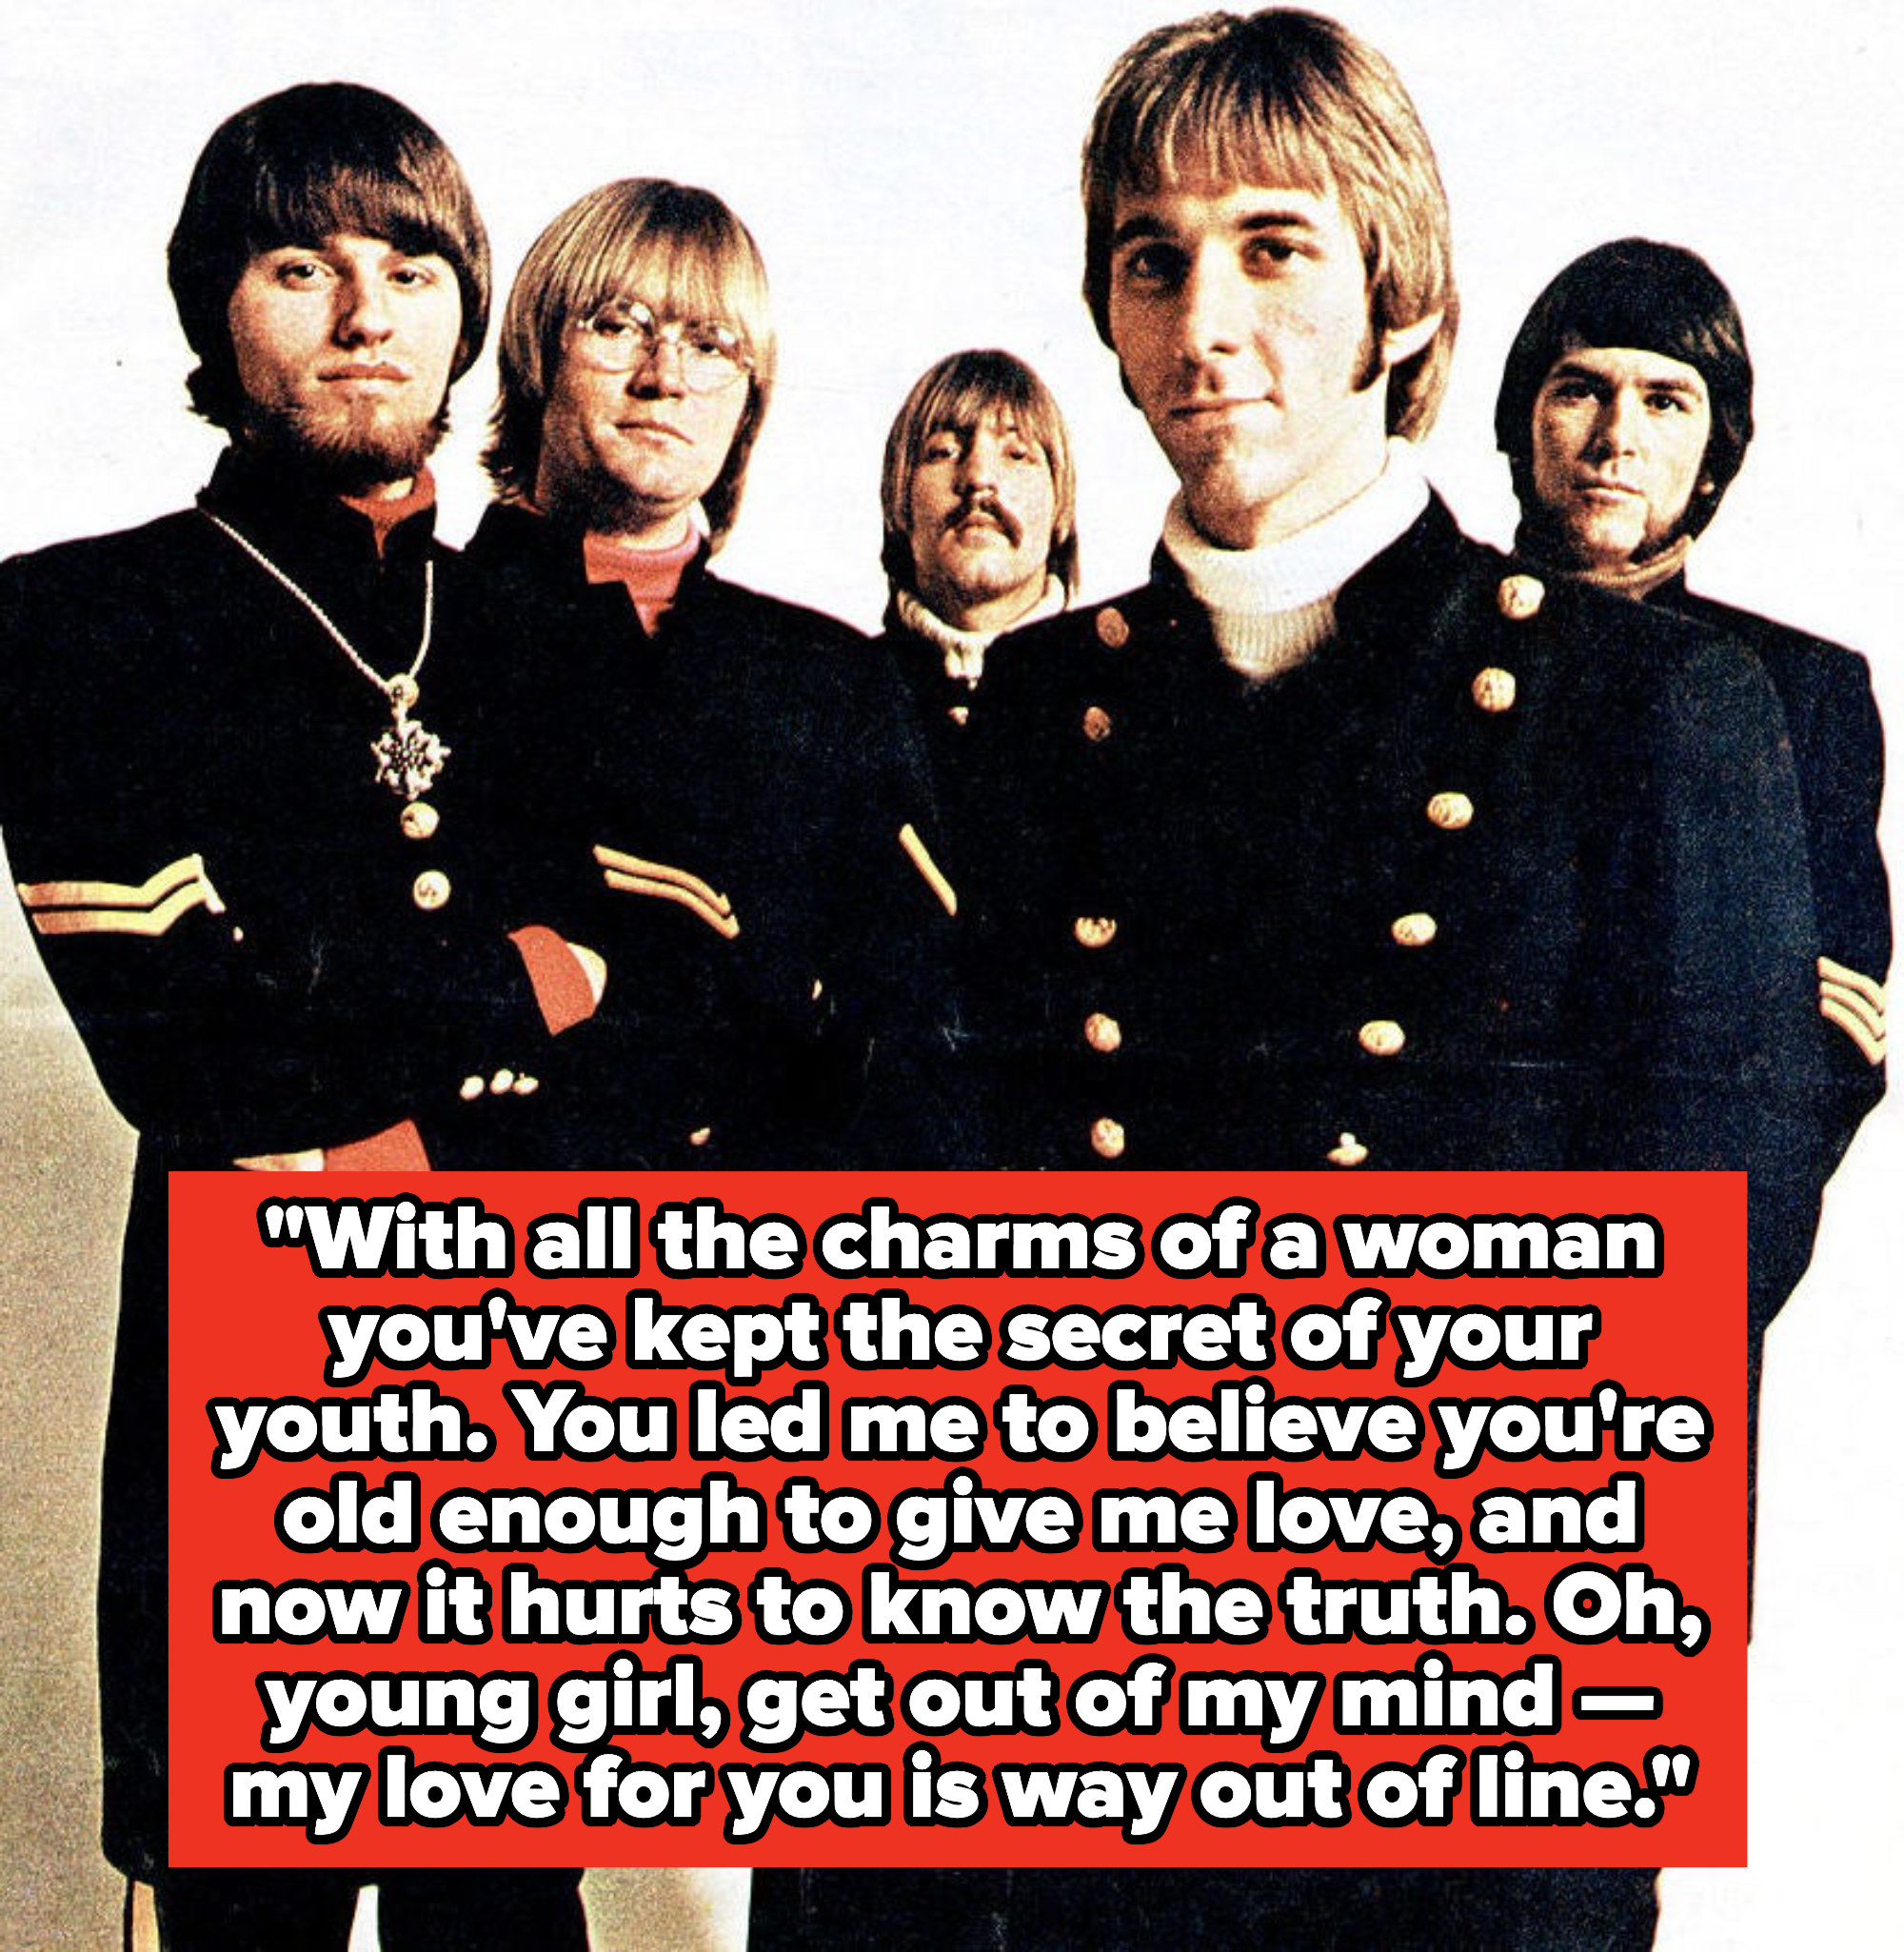 """Gary Puckett & the Union Gap lyrics:""""With all the charms of a woman you've kept the secret of your youth. You led me to believe you're old enough to give me love, and now it hurts to know the truth"""""""